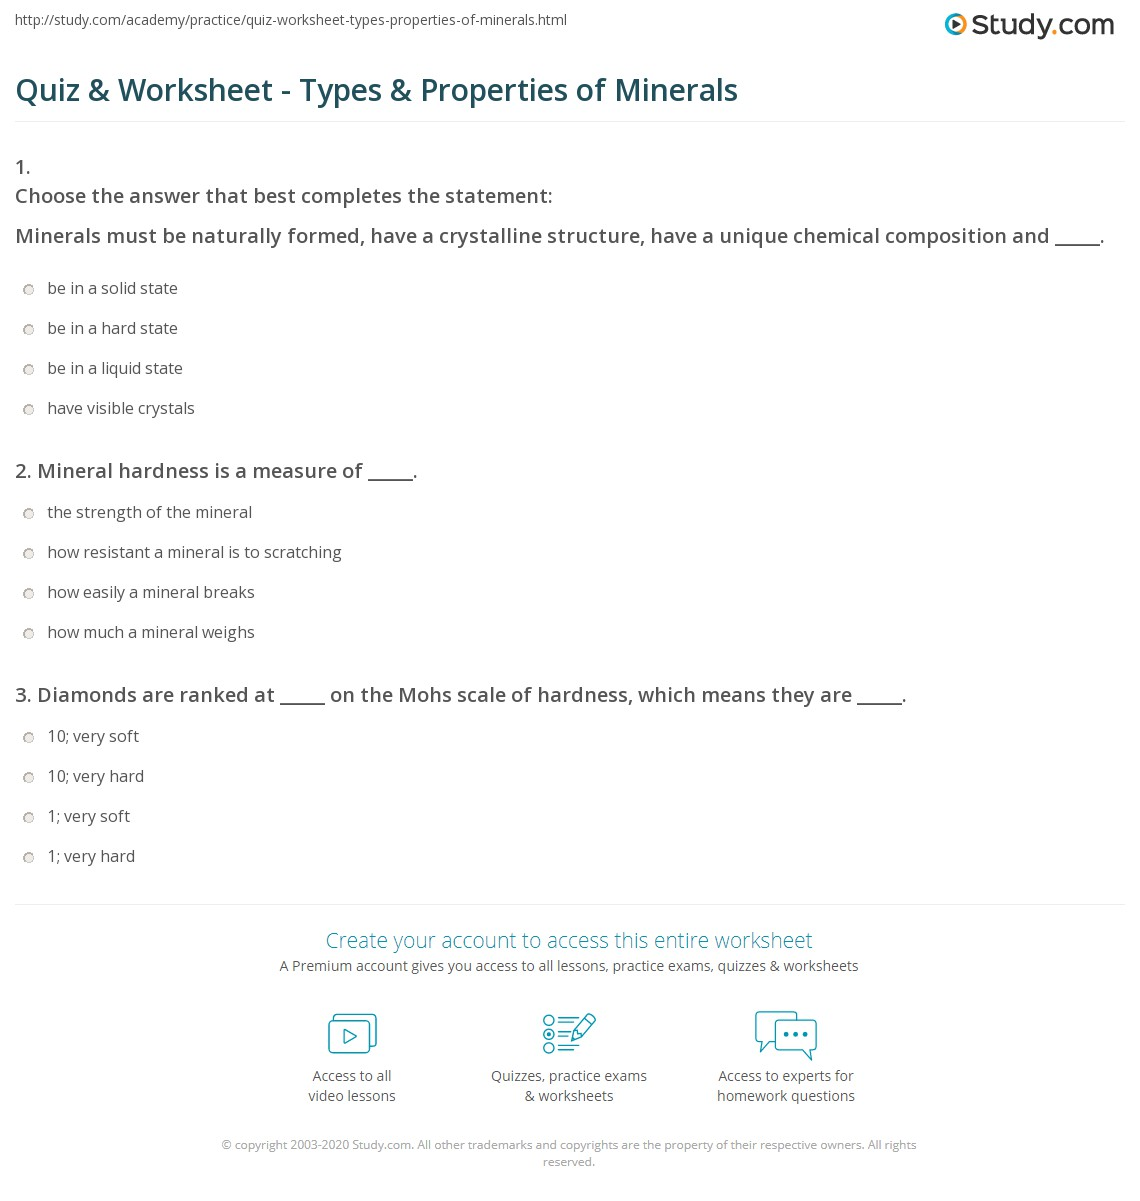 Minerals Activity Worksheet Answers